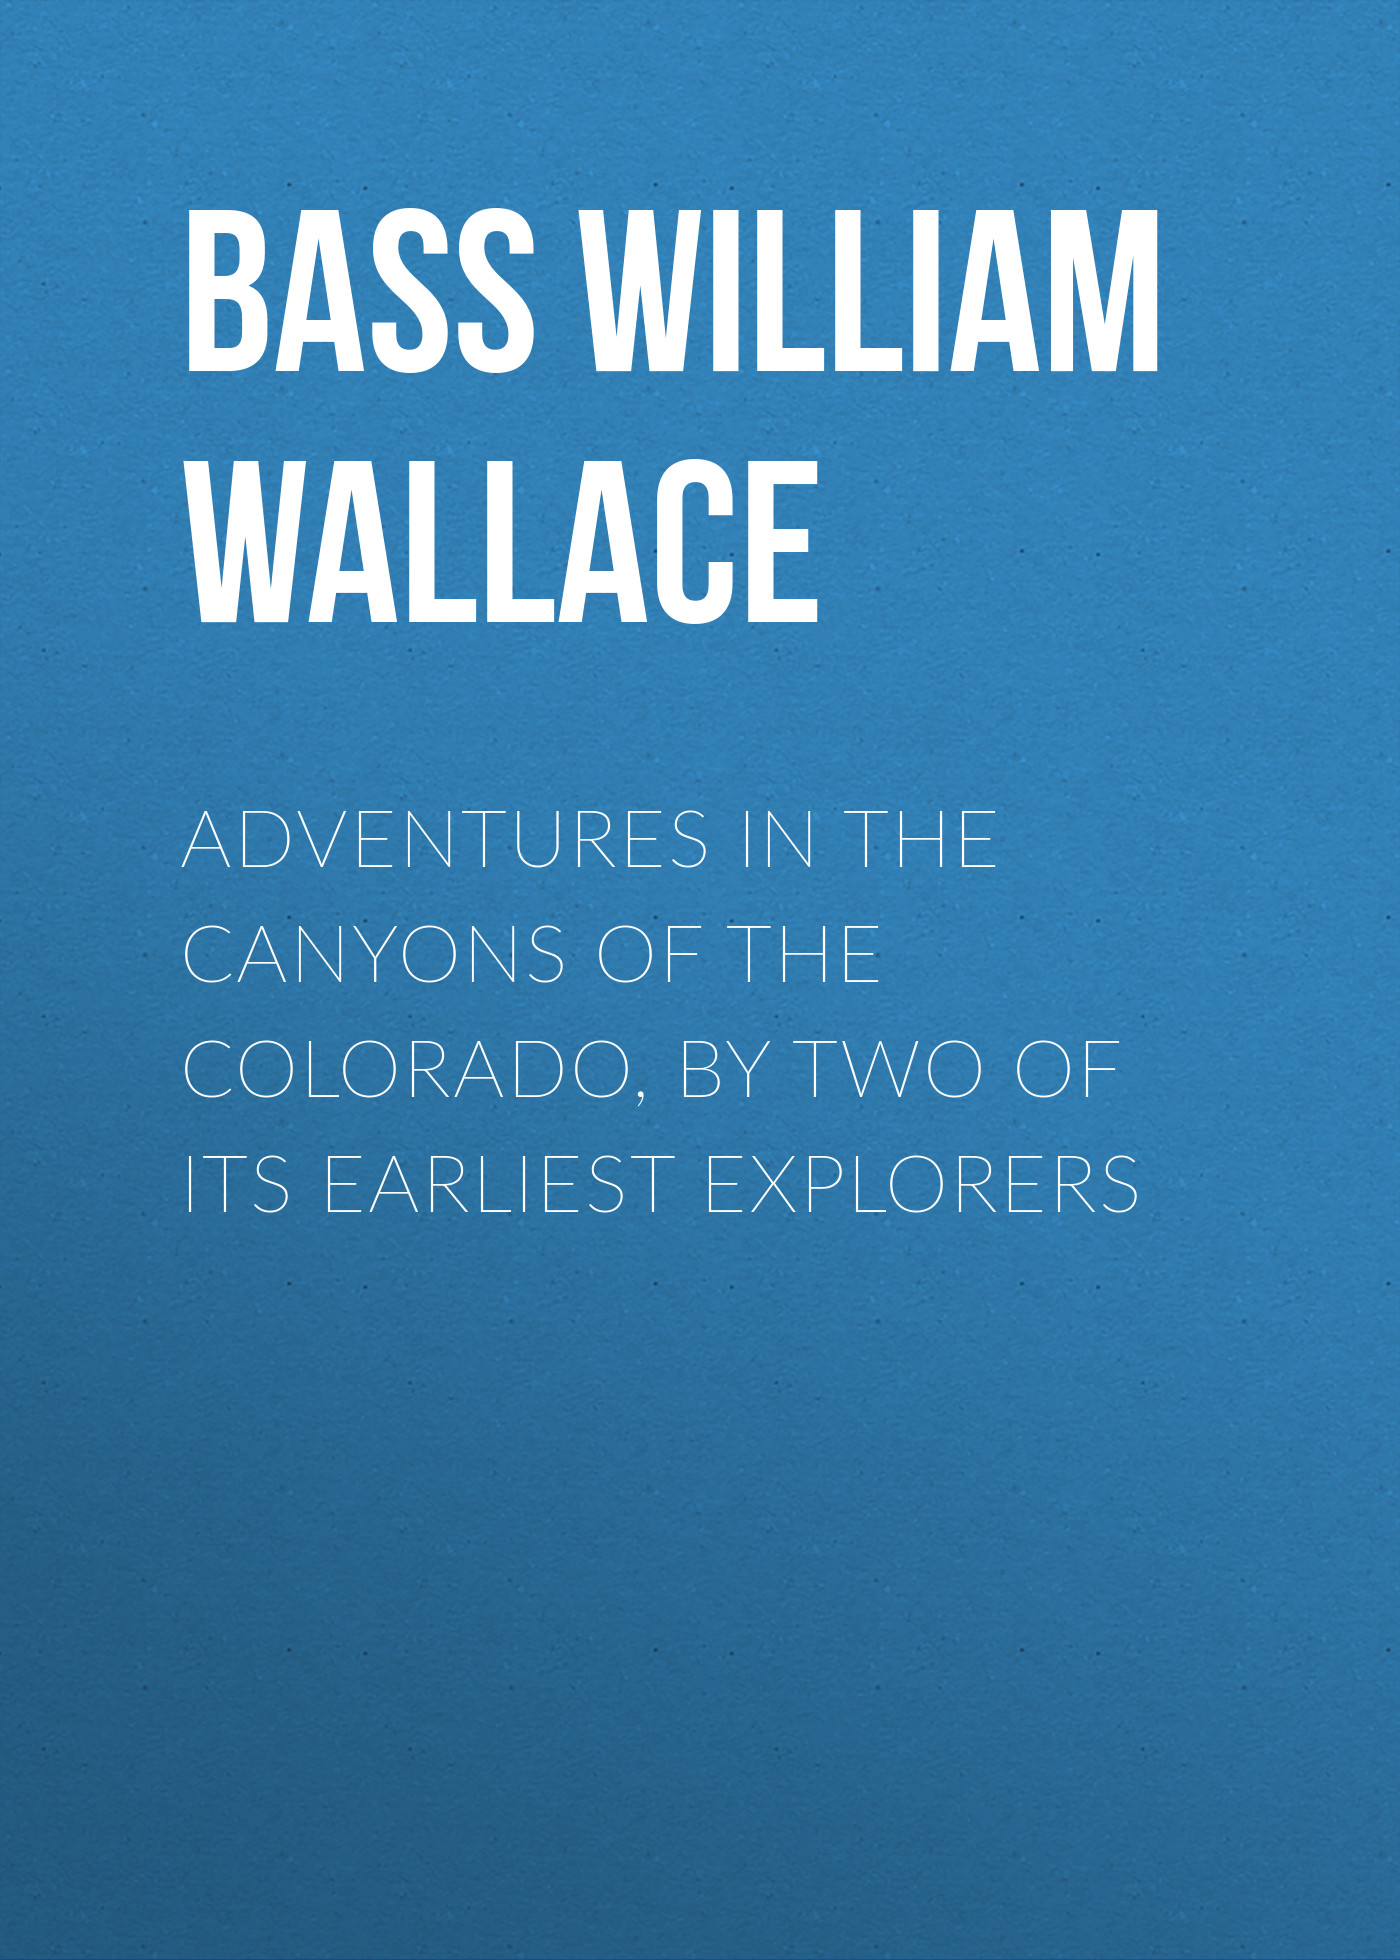 Bass William Wallace Adventures in the Canyons of the Colorado, by Two of Its Earliest Explorers